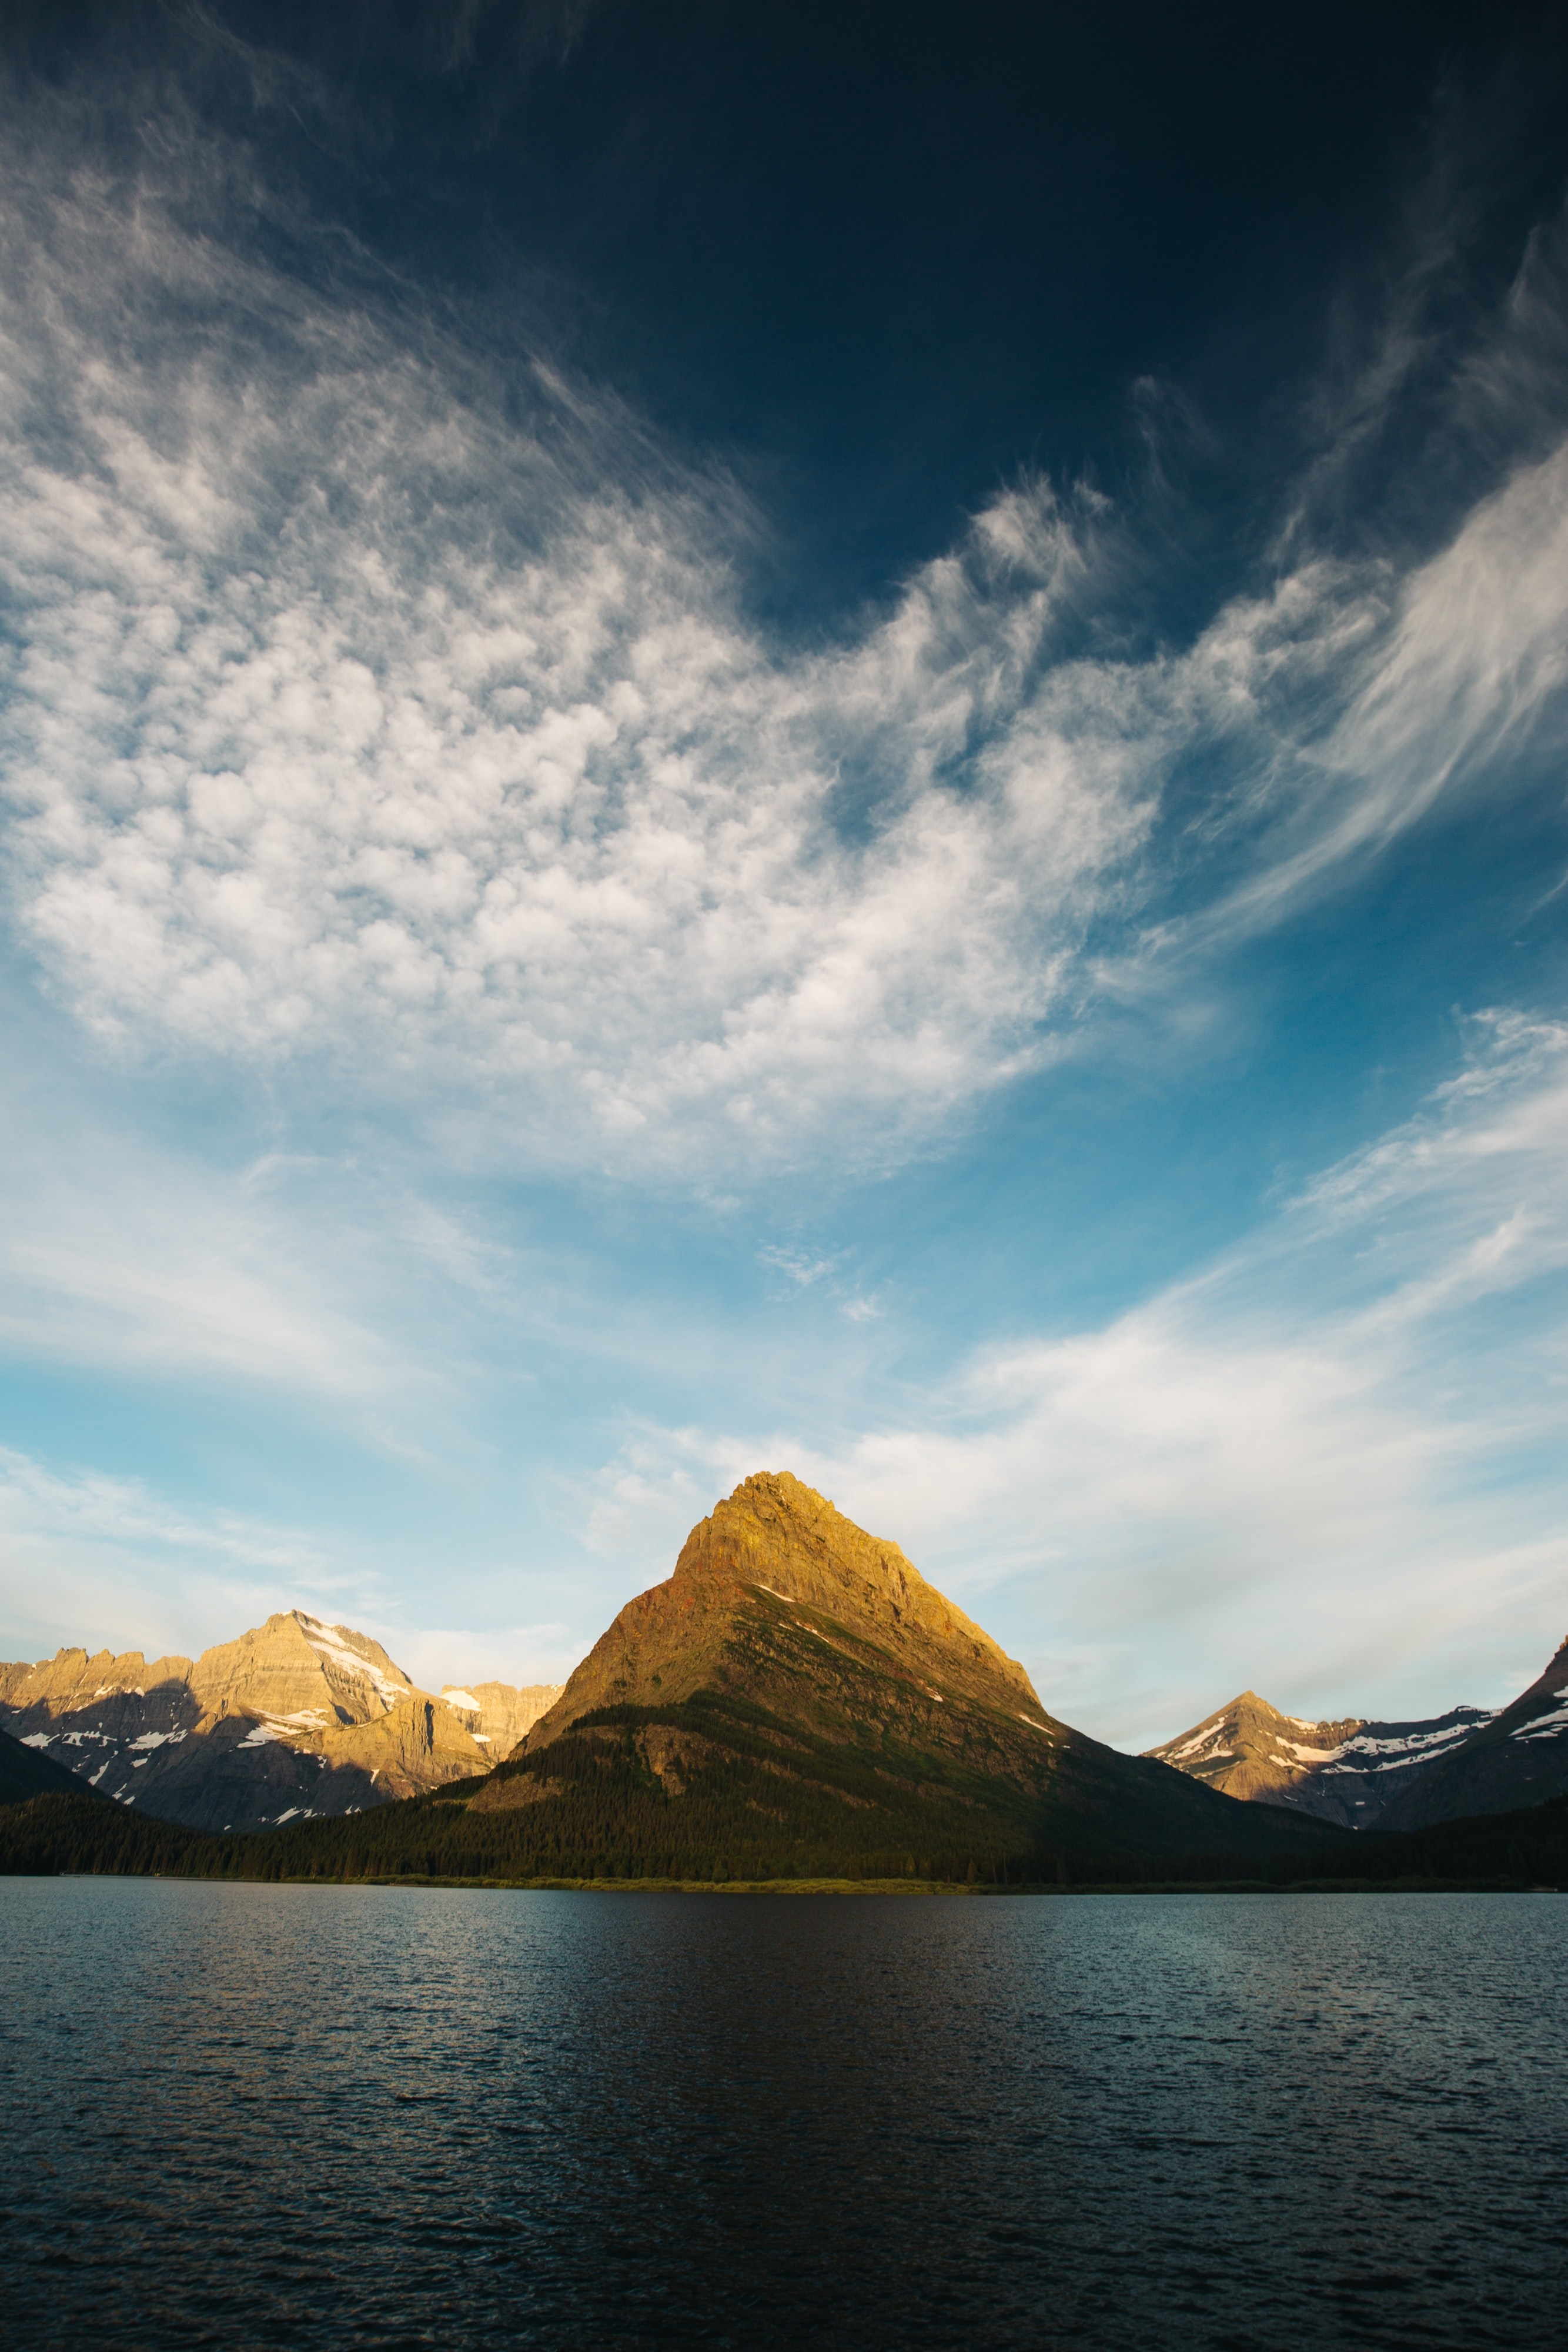 landscape photography of mountains beside body of water